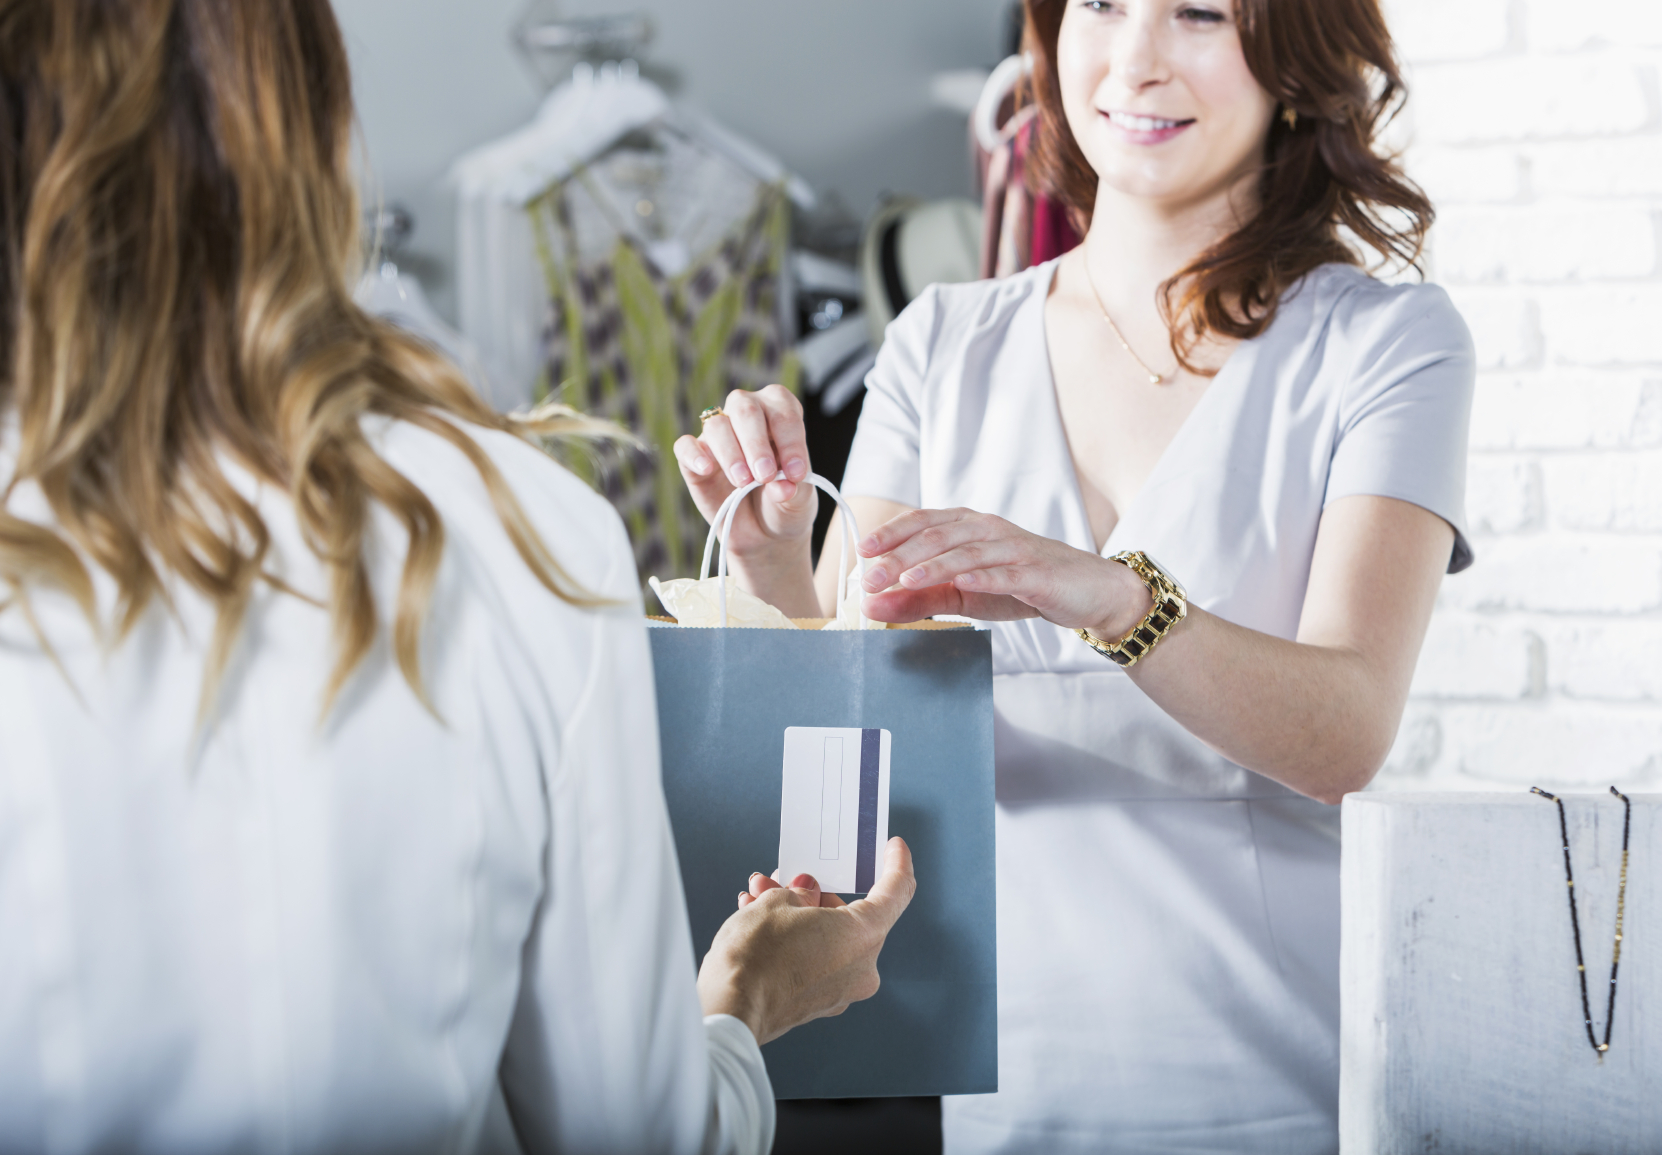 retail sales tips  how to read customers and sell to them